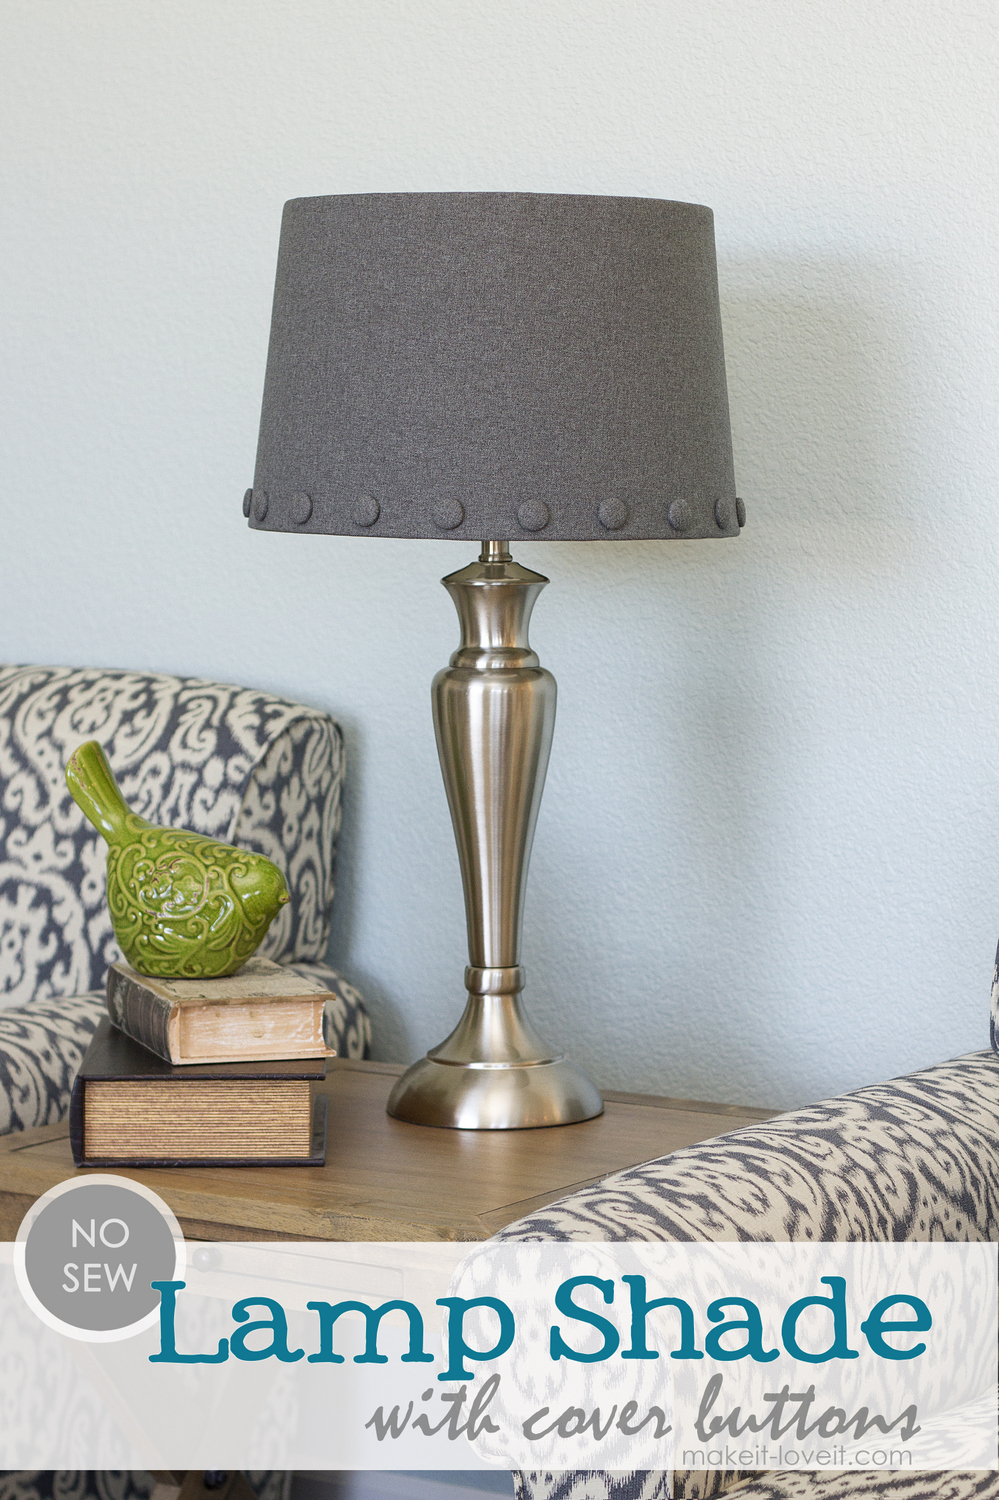 No Sew: Lamp Shade with Cover Buttons